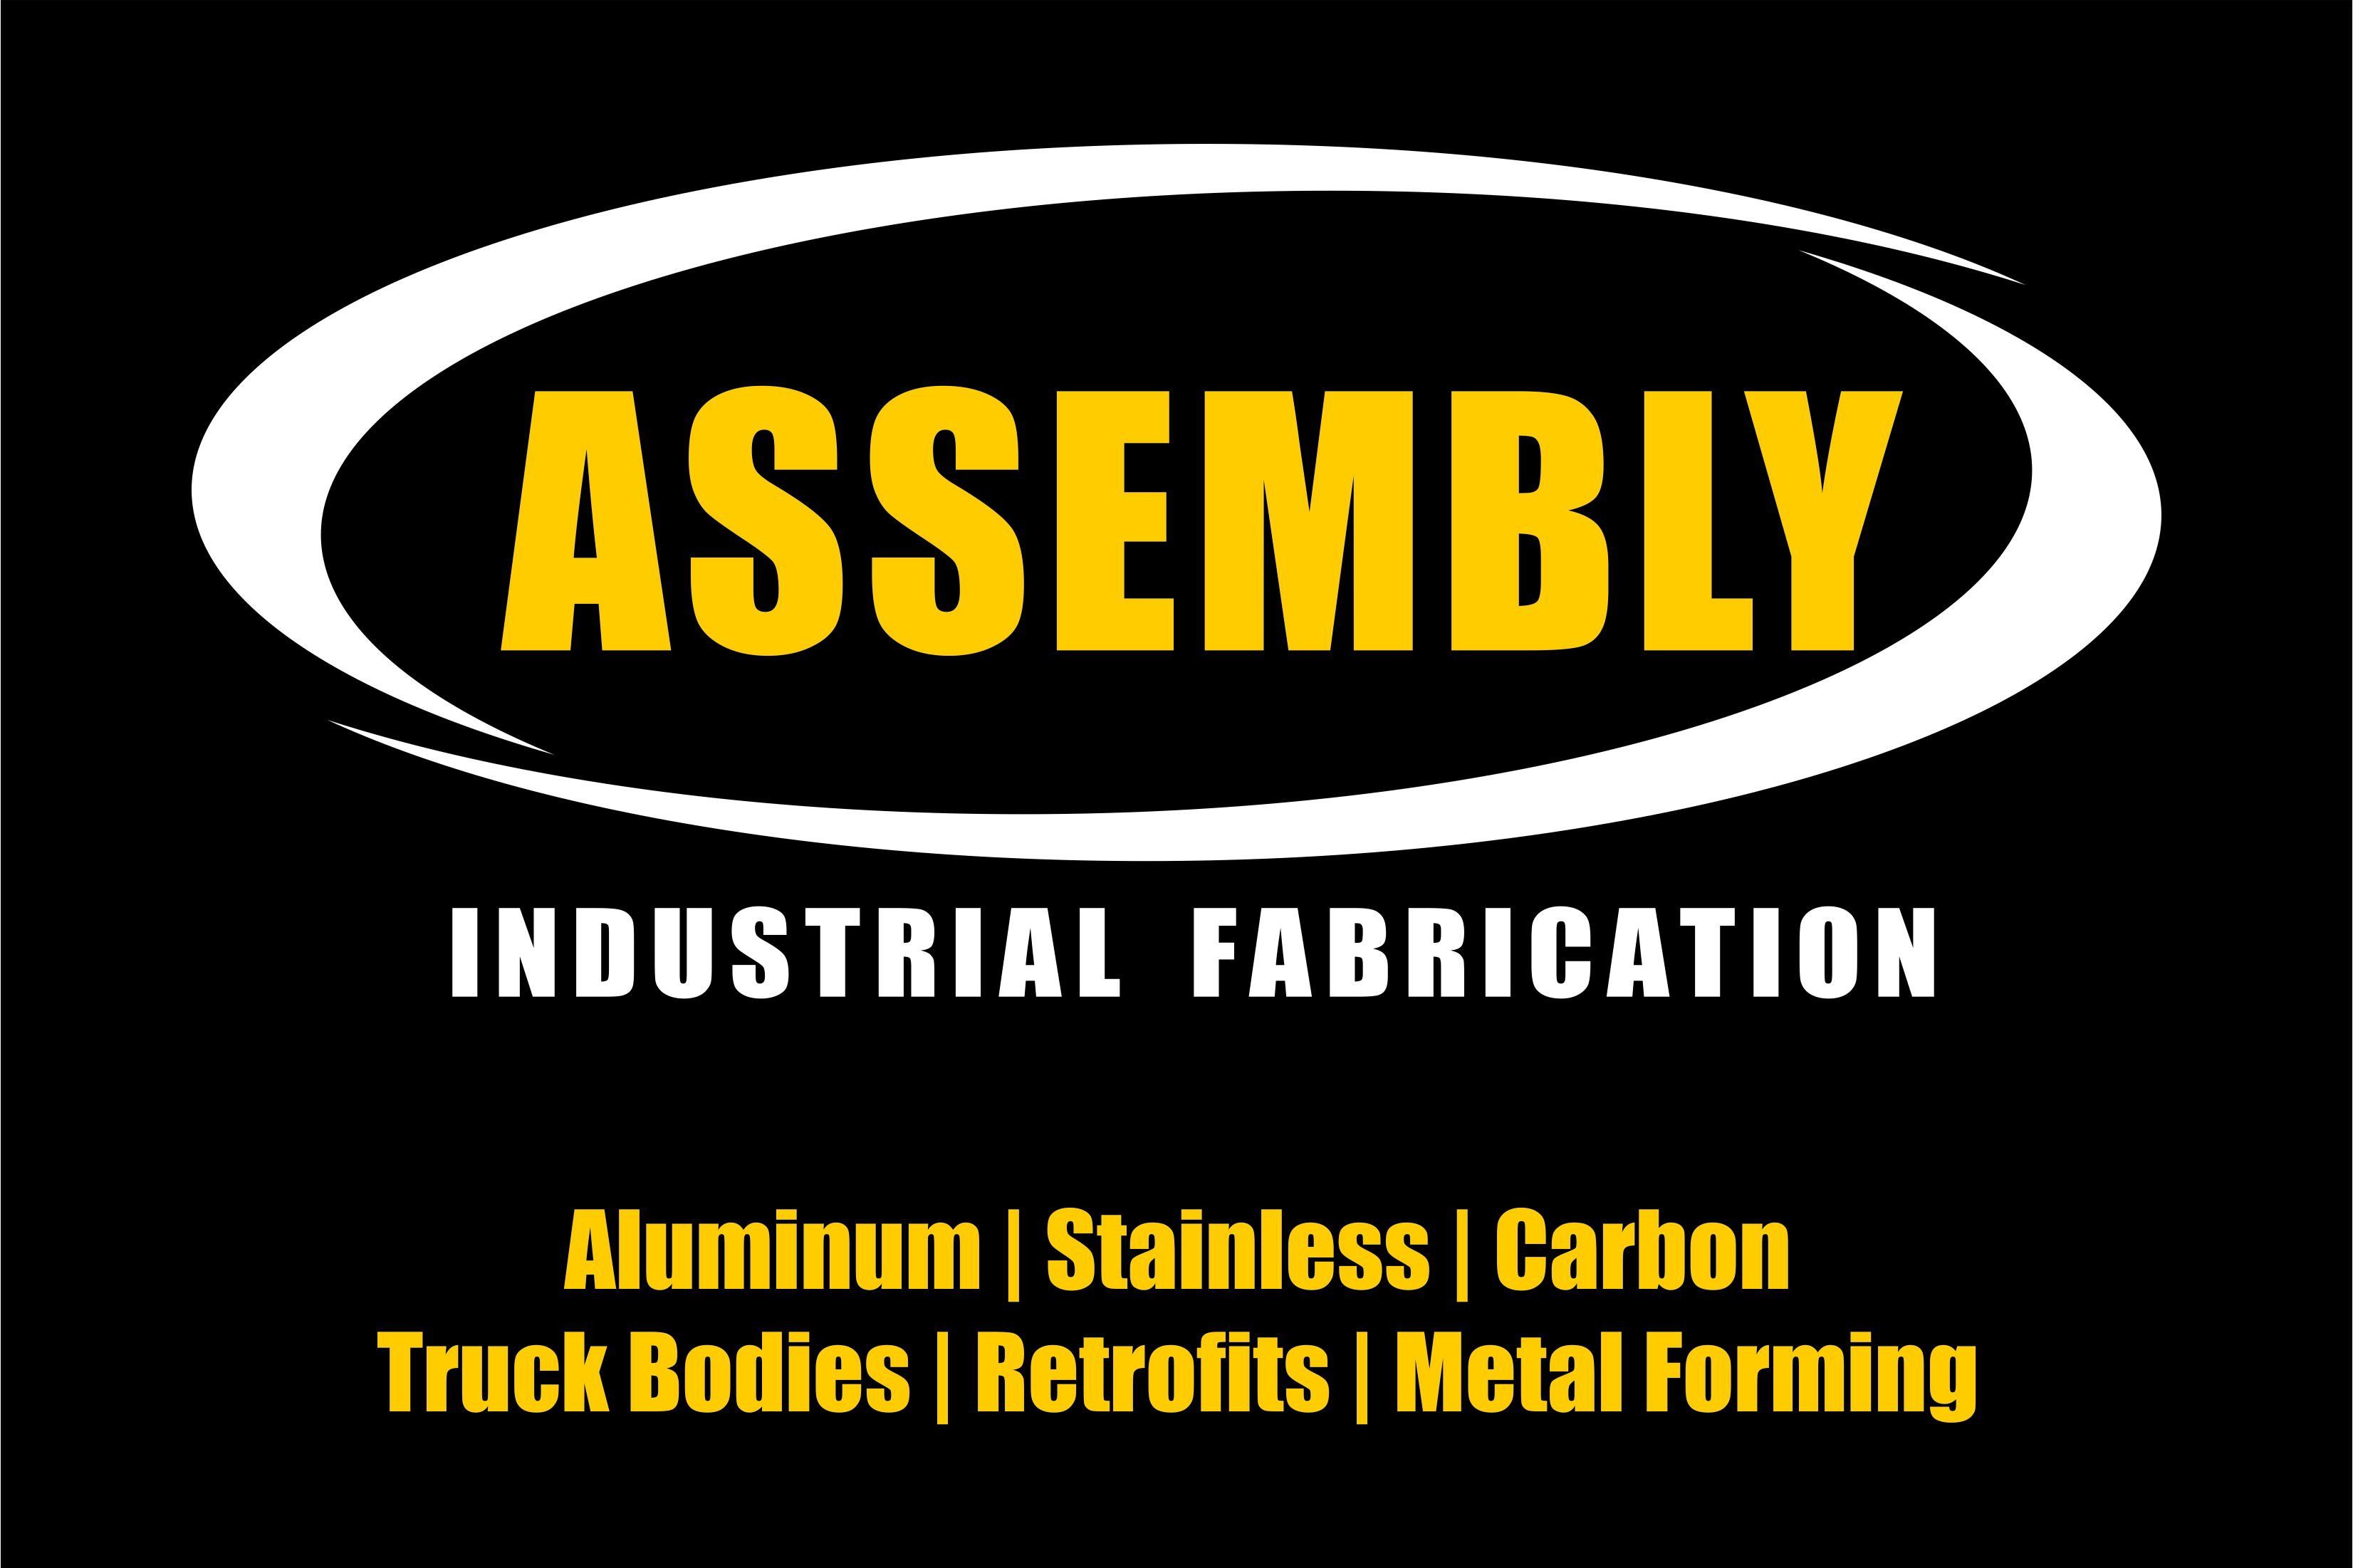 Assembly Industrial Fabrication